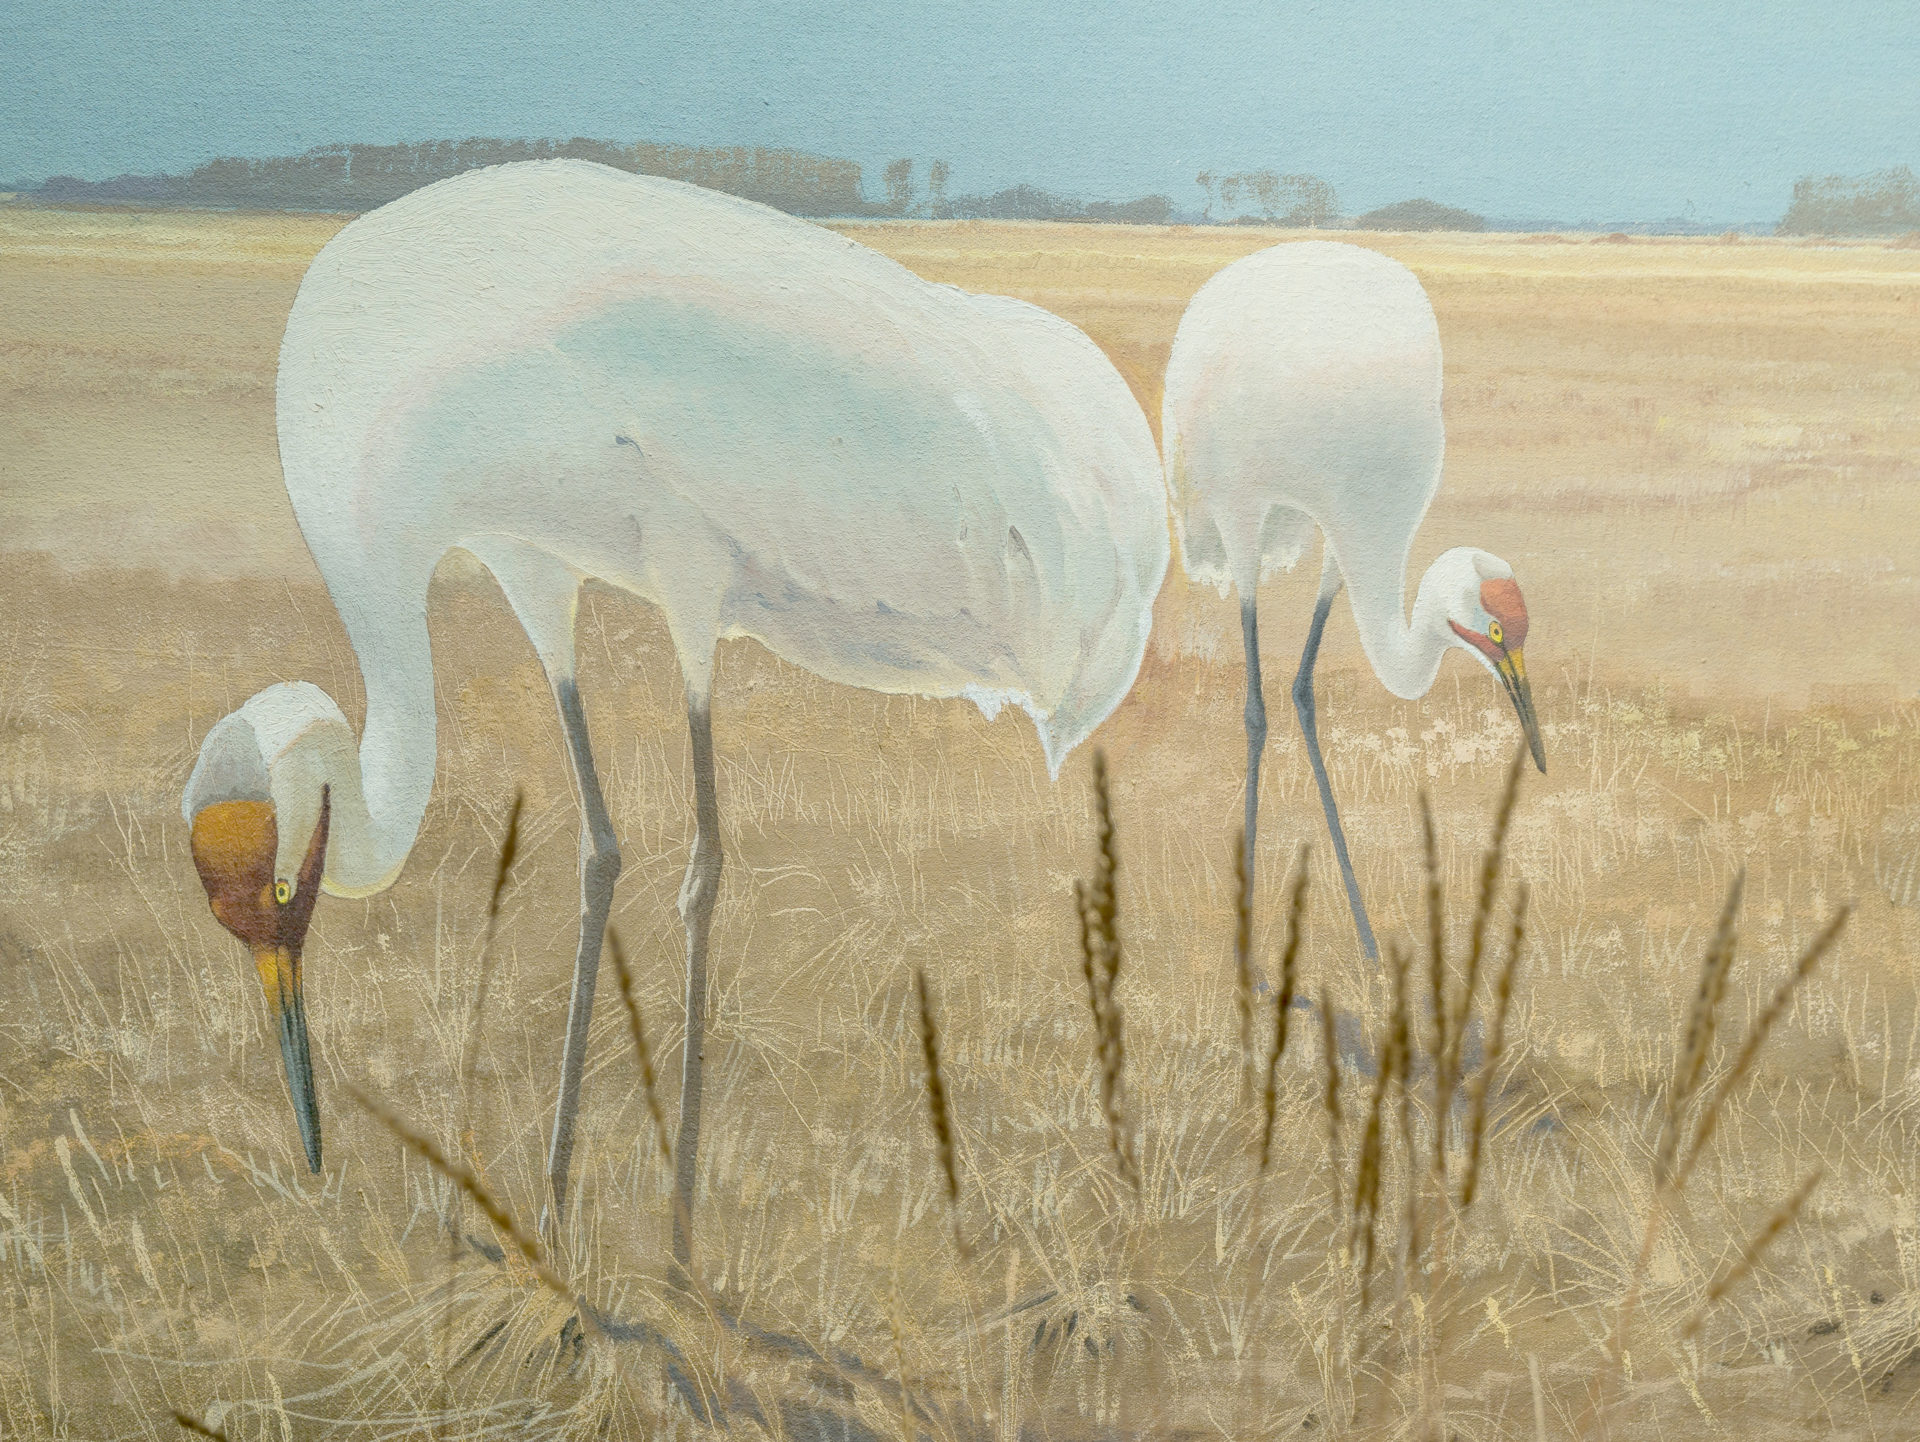 Whooping cranes grazing